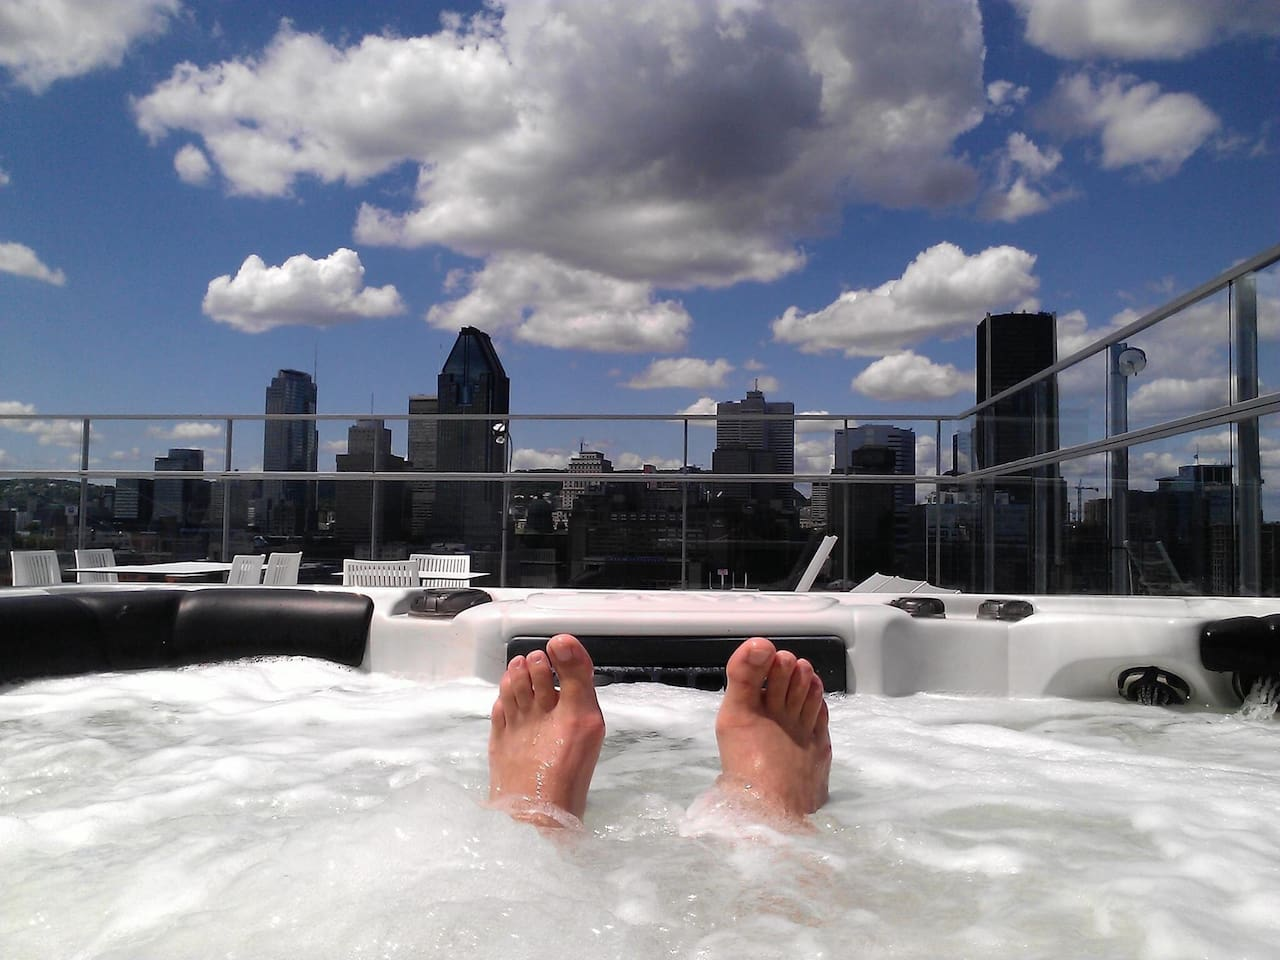 whirlpool and downtown rooftop view !!!